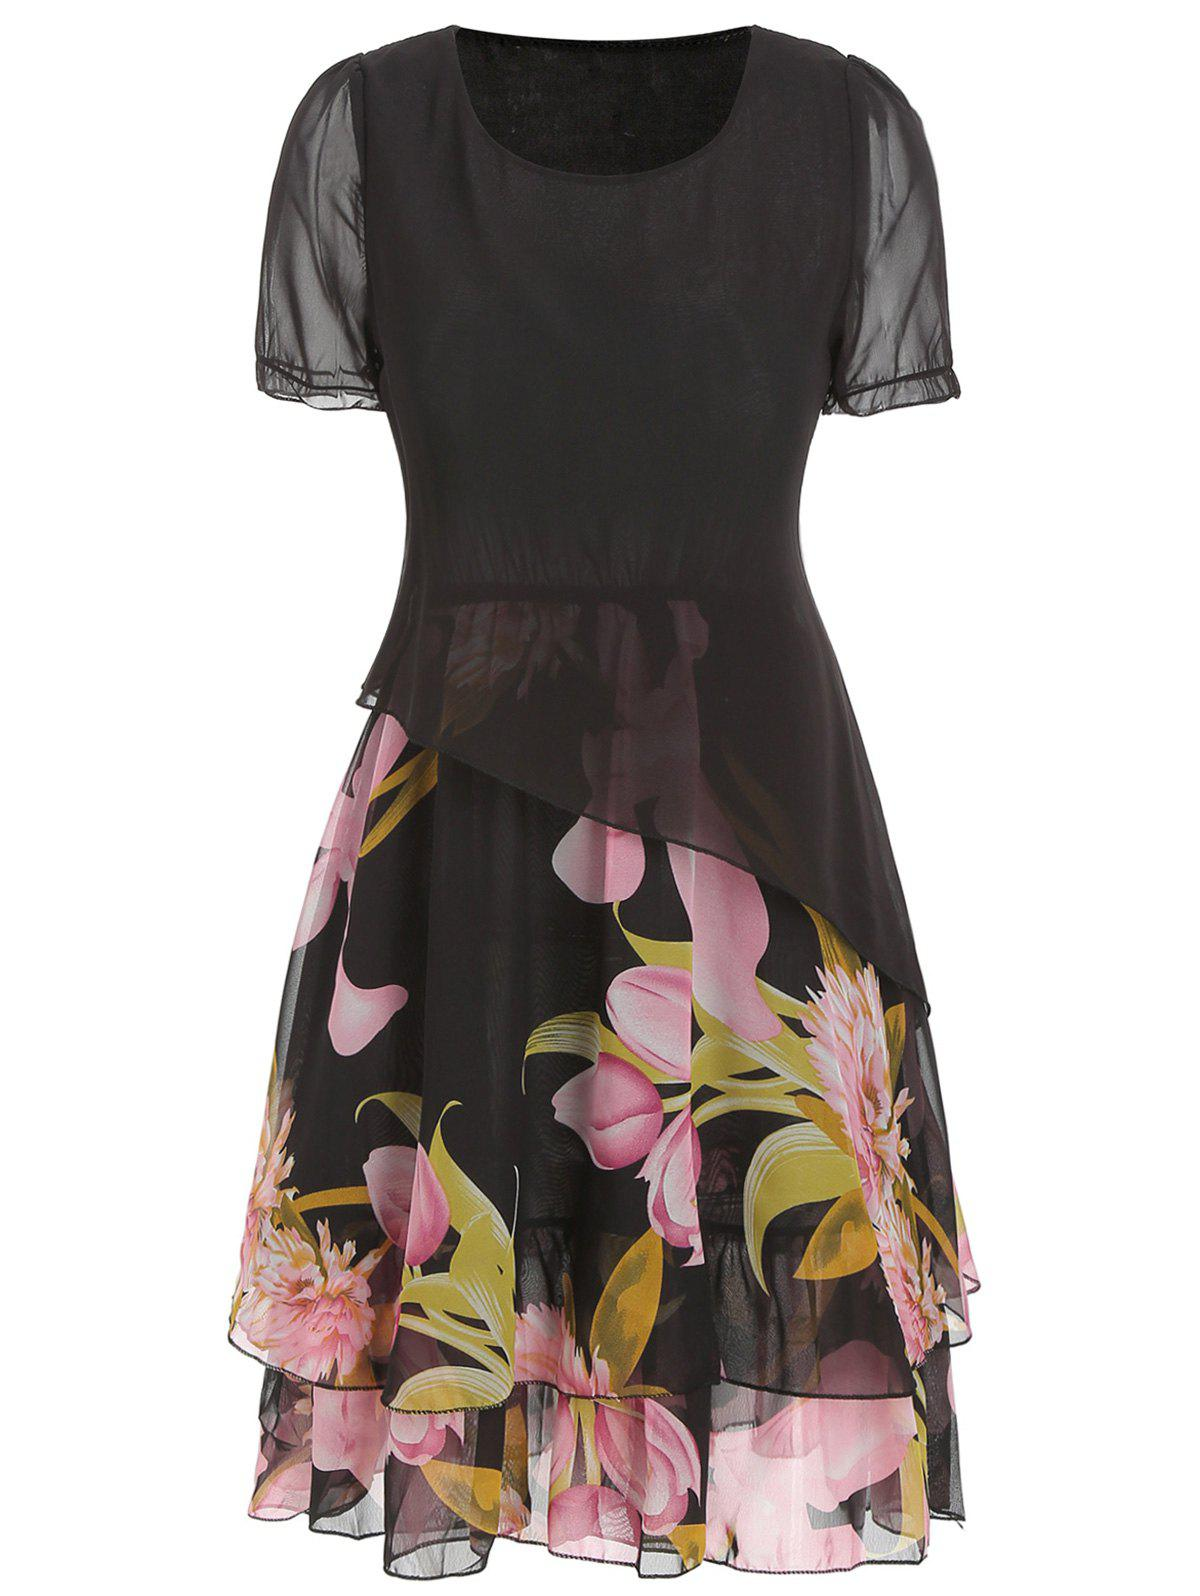 Fashion Floral Print Chiffon A Line Dress